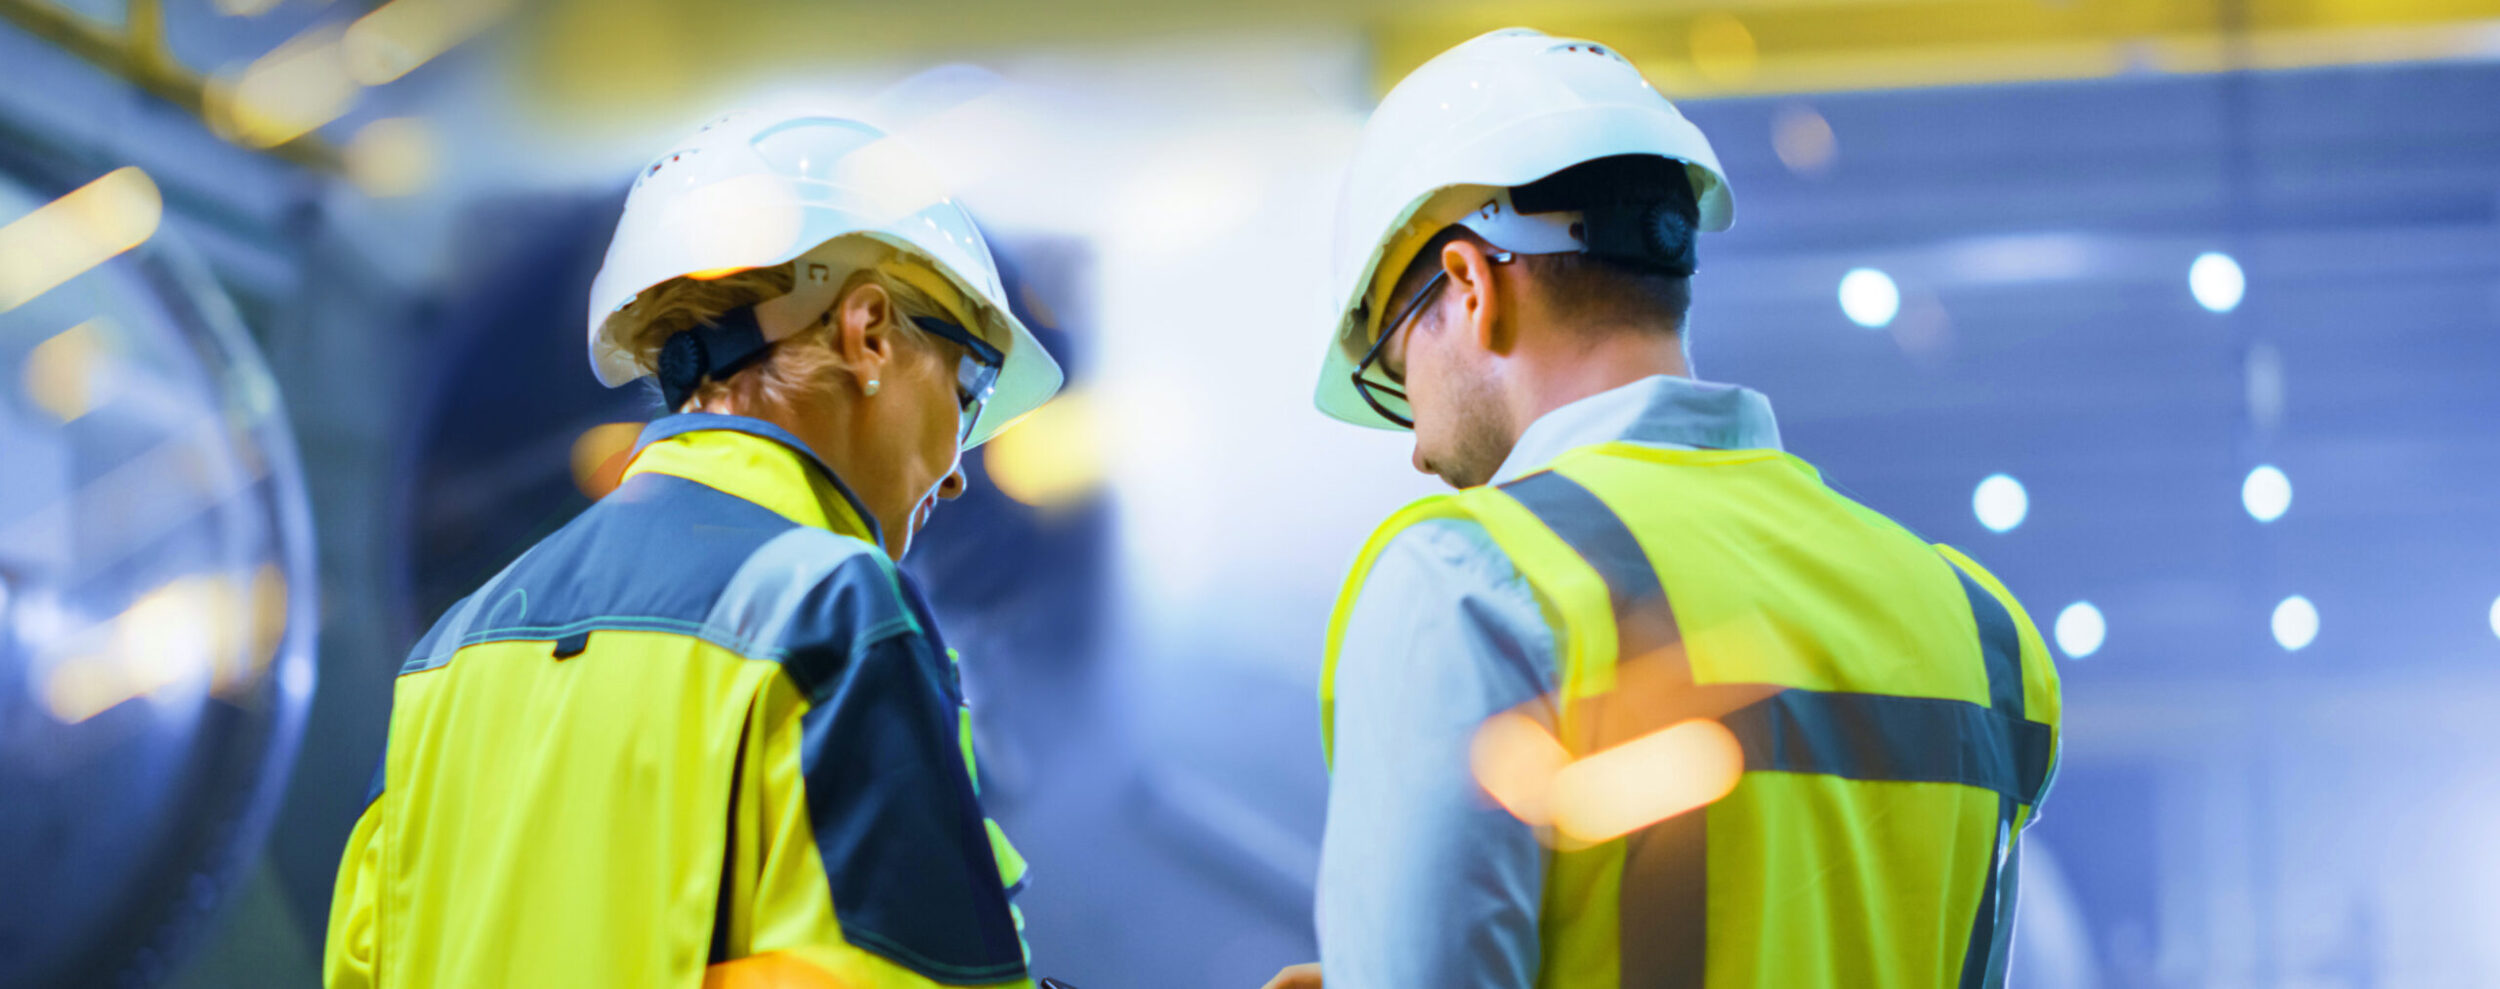 Man and woman in high-vis jackets and hard hats working at a facility